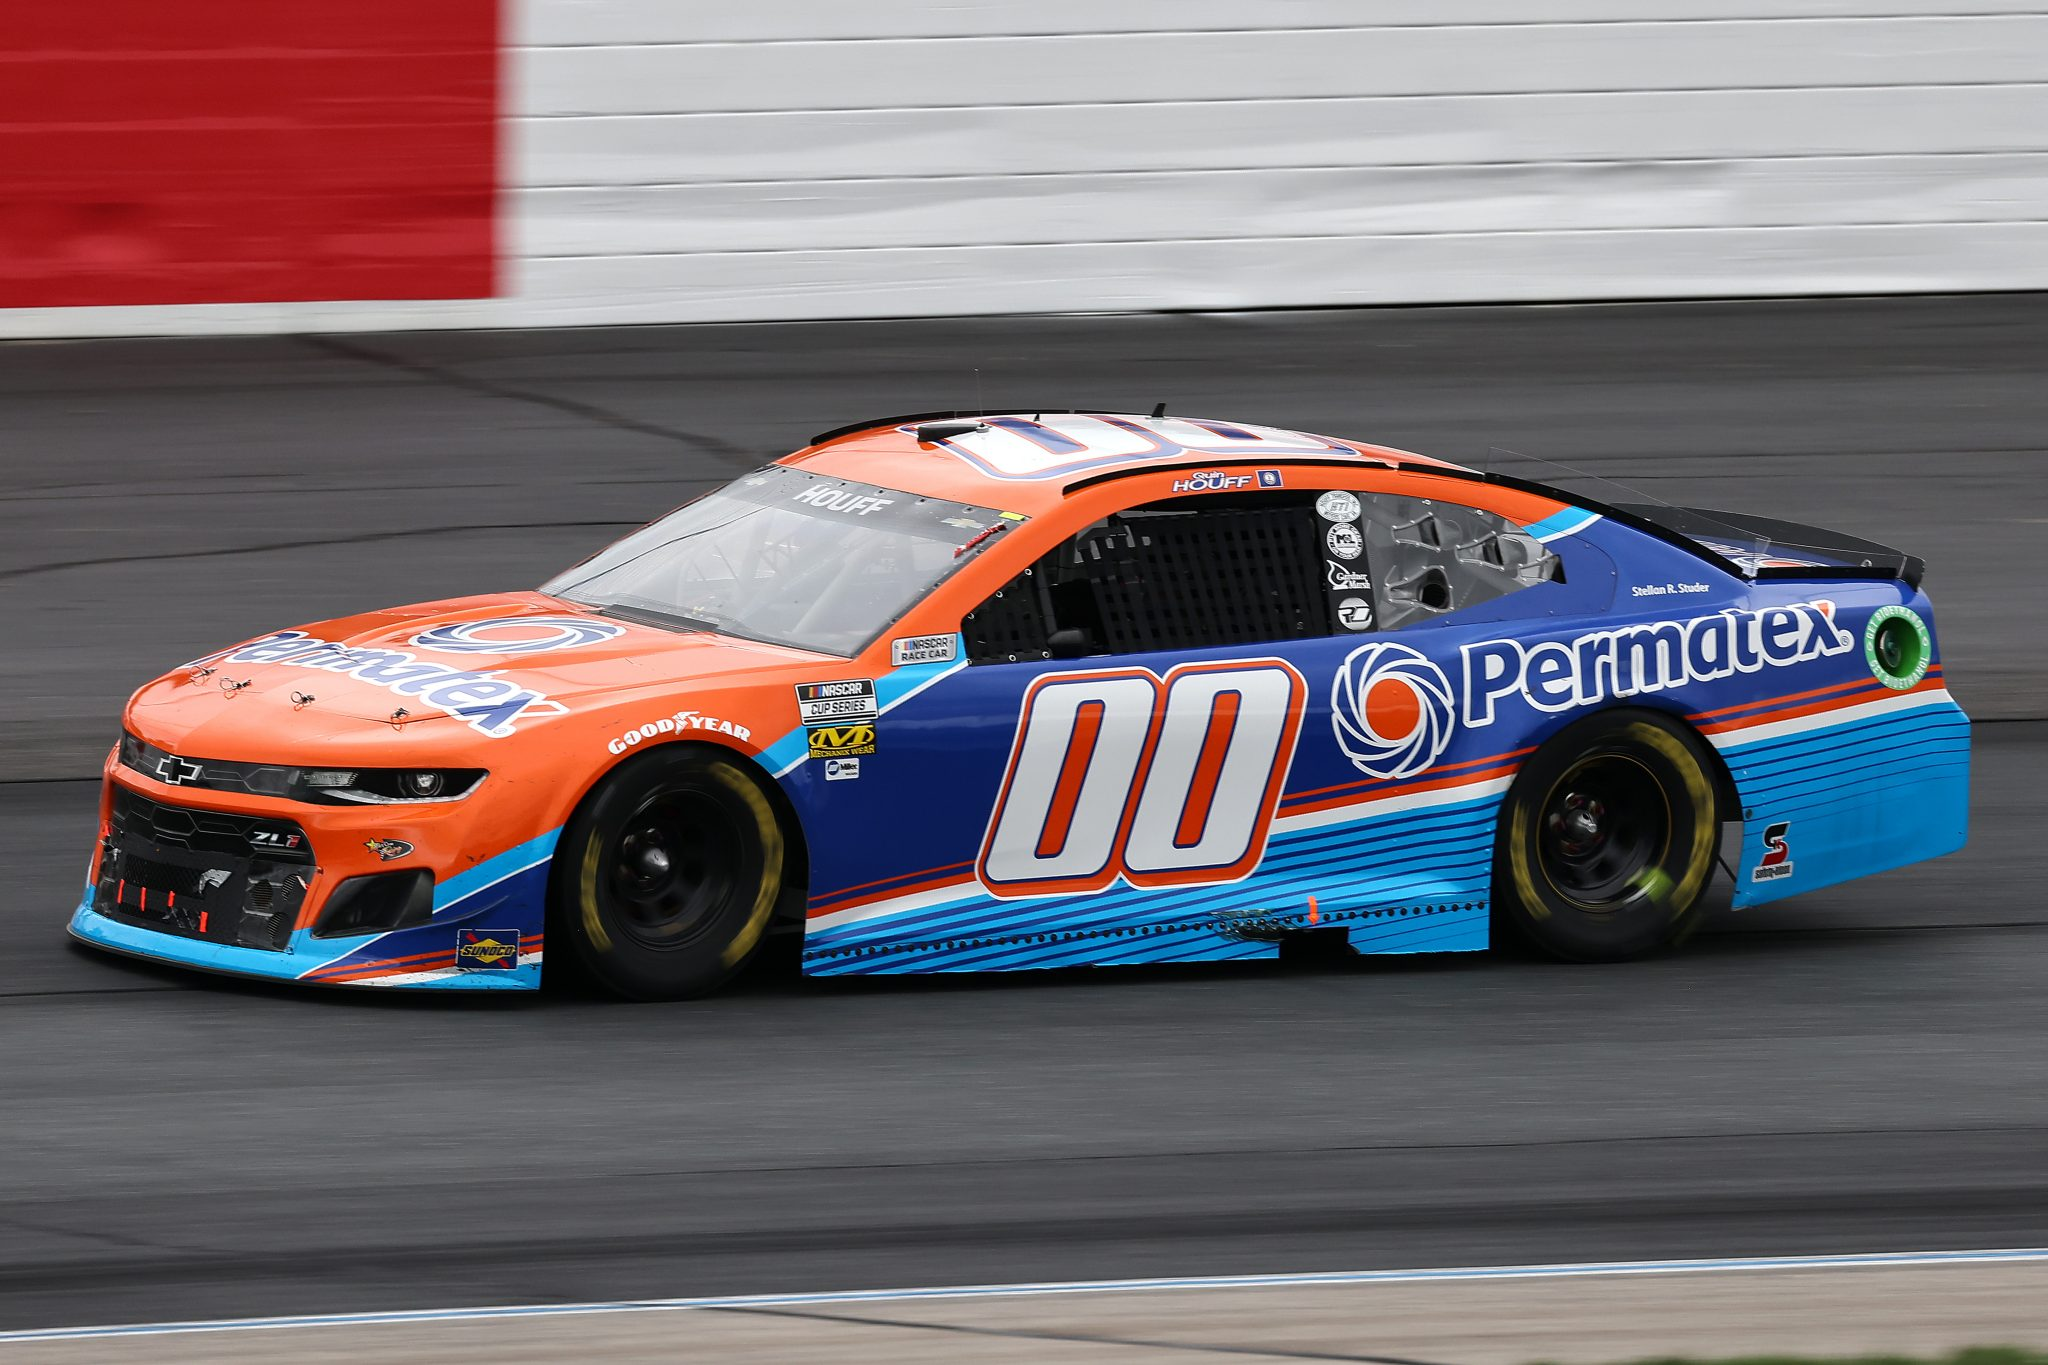 LOUDON, NEW HAMPSHIRE - JULY 18: Quin Houff, driver of the #00 Permatex Chevrolet, drives during the NASCAR Cup Series Foxwoods Resort Casino 301 at New Hampshire Motor Speedway on July 18, 2021 in Loudon, New Hampshire. (Photo by James Gilbert/Getty Images)   Getty Images